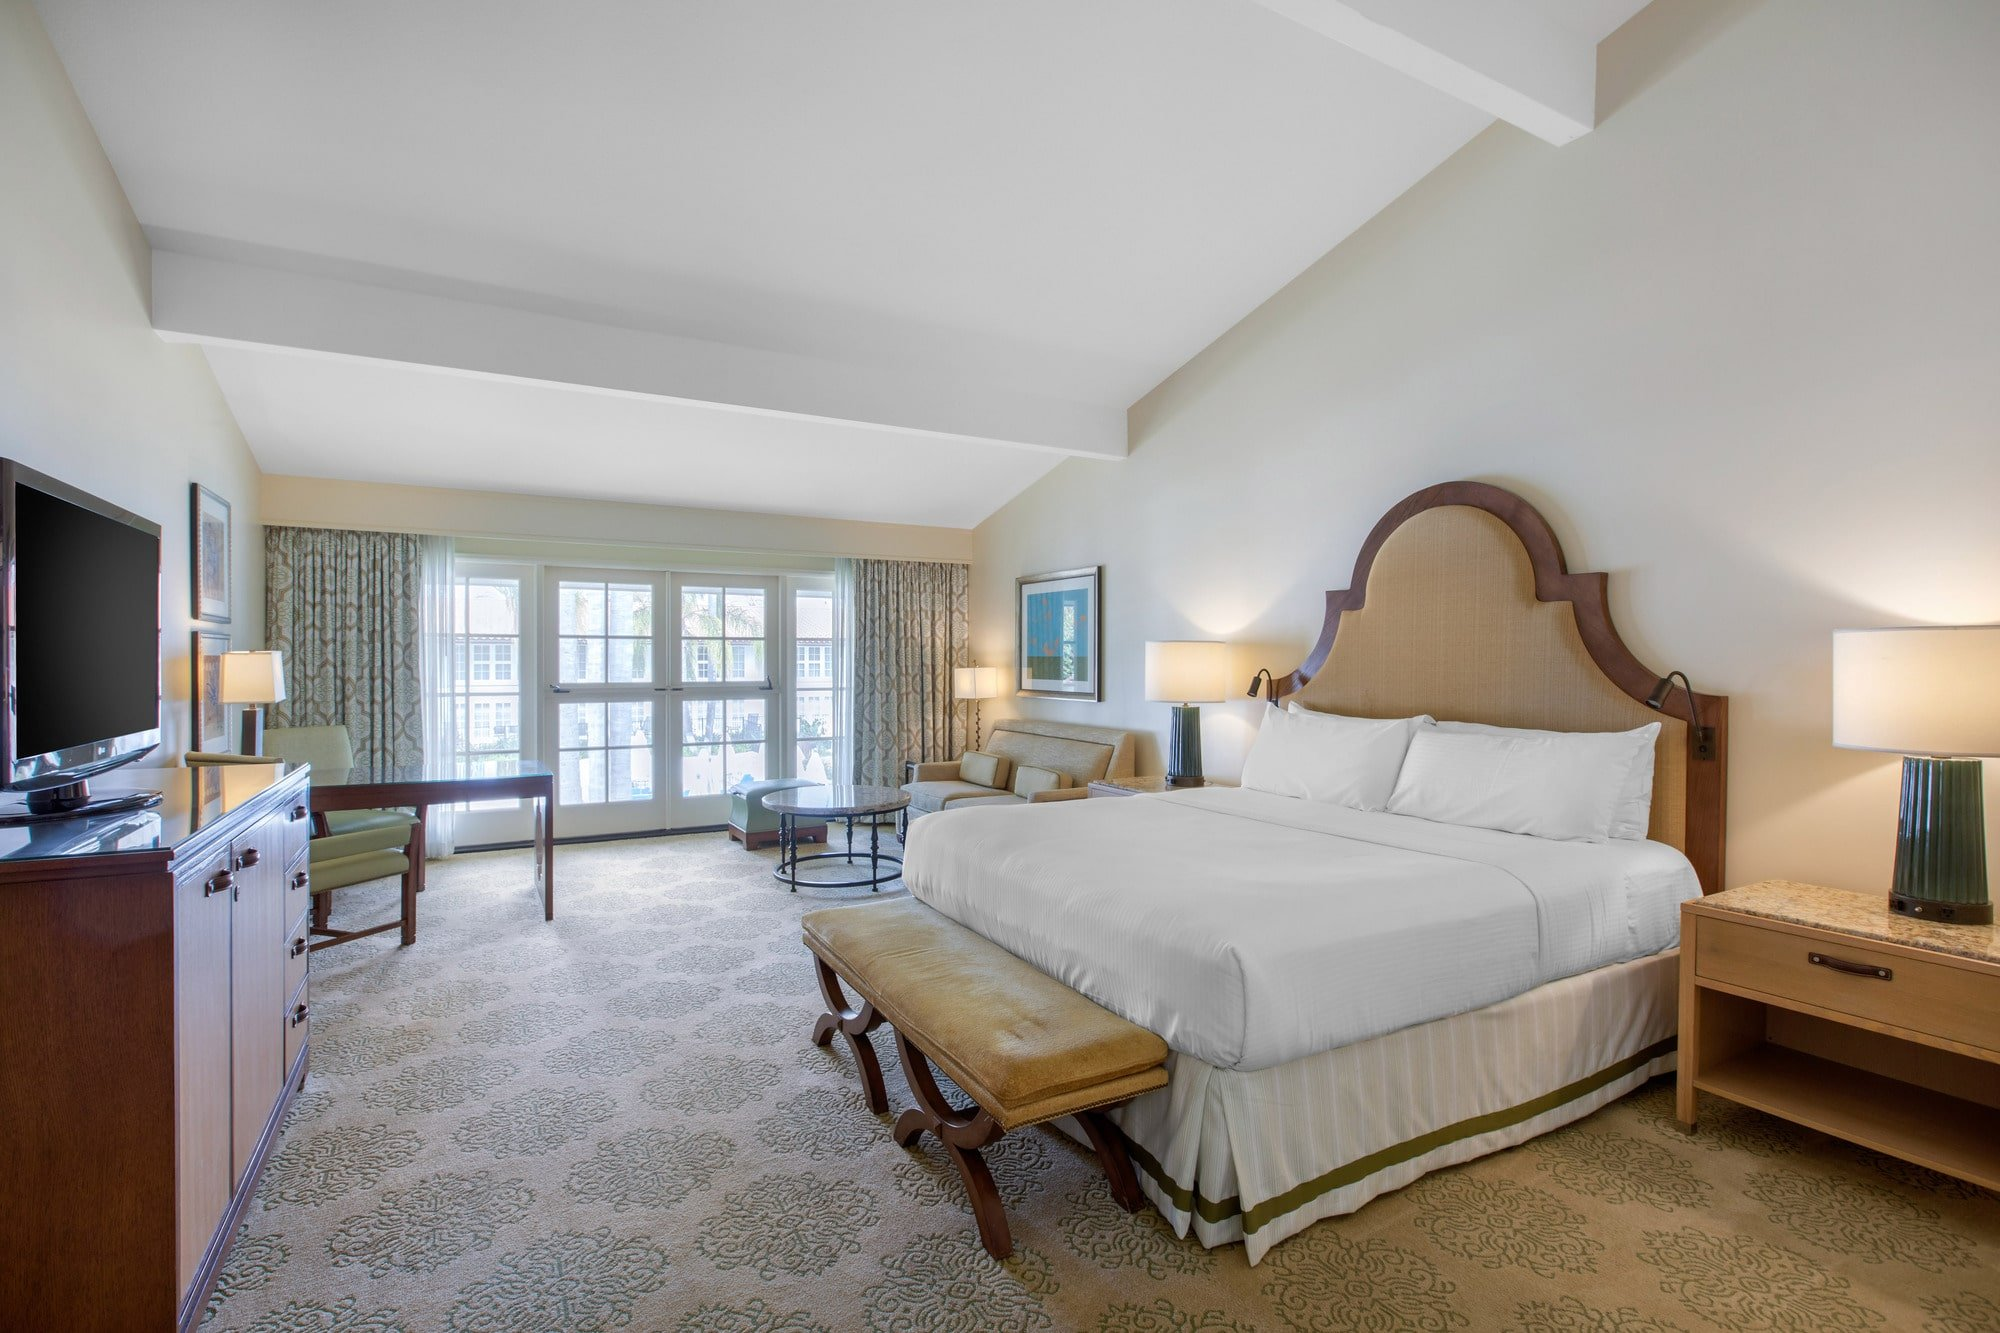 Larger La Costa King Room with sofa bed interior at Omni La Costa Resort and Spa Carlsbad.